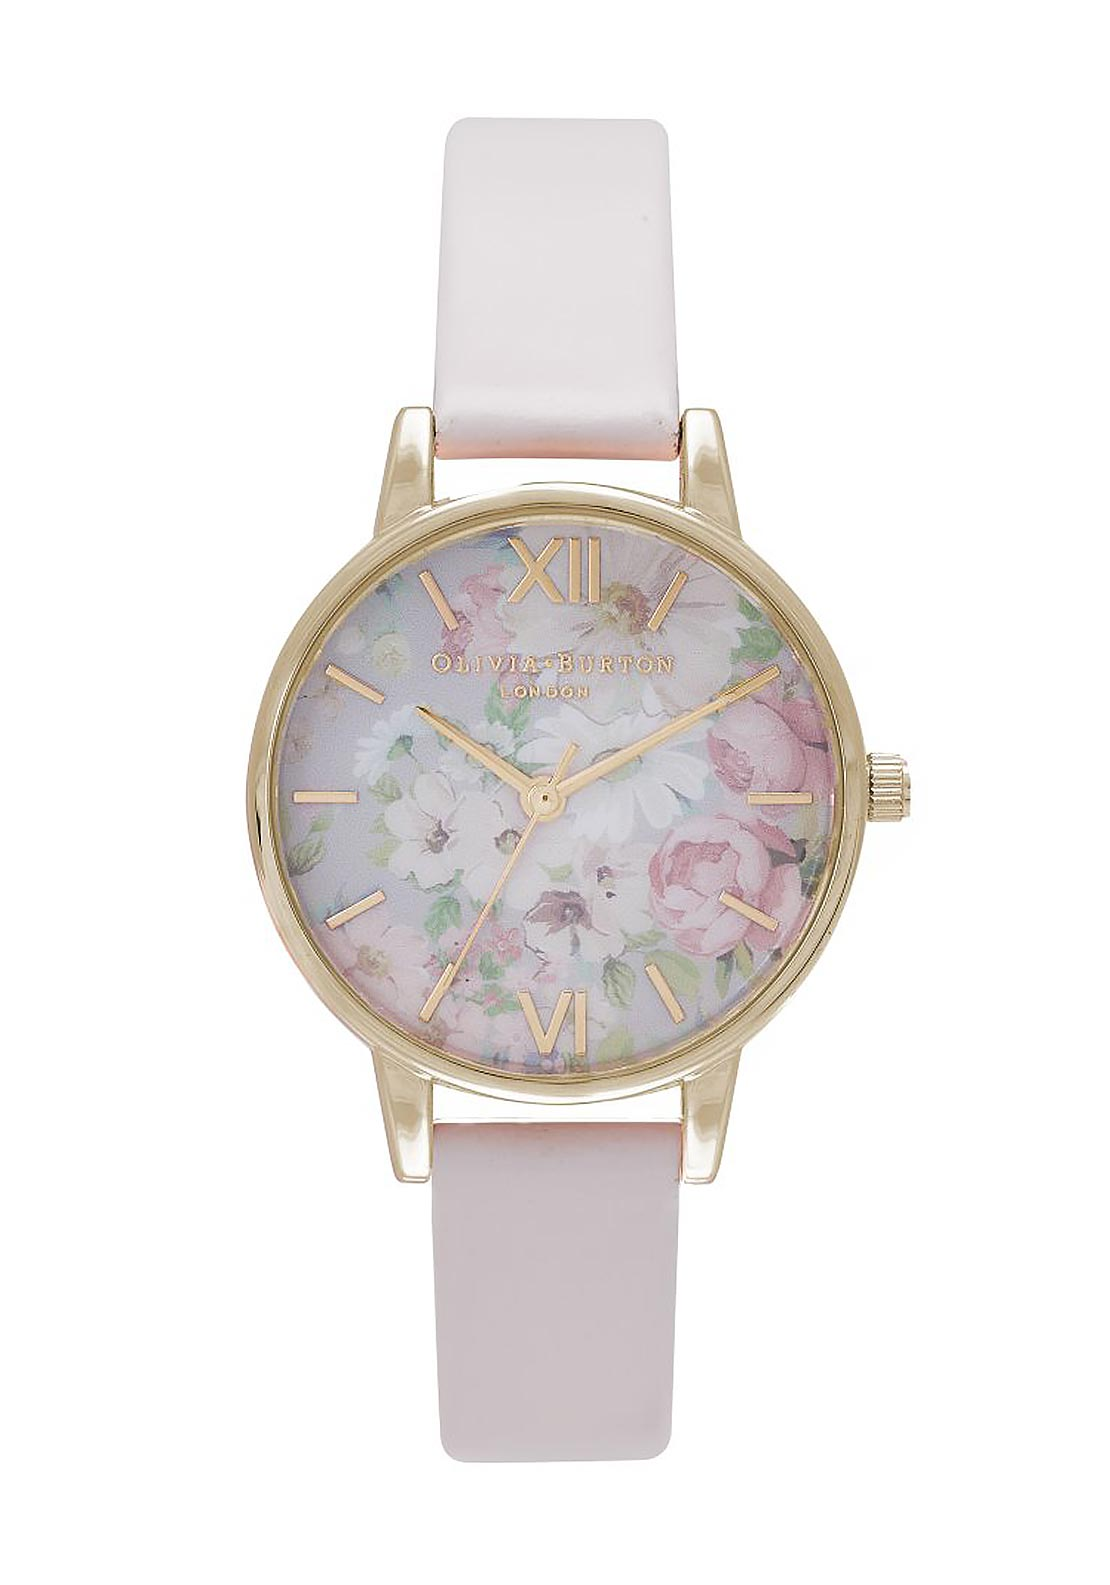 Olivia Burton Flower Show Watch, Blush & Gold